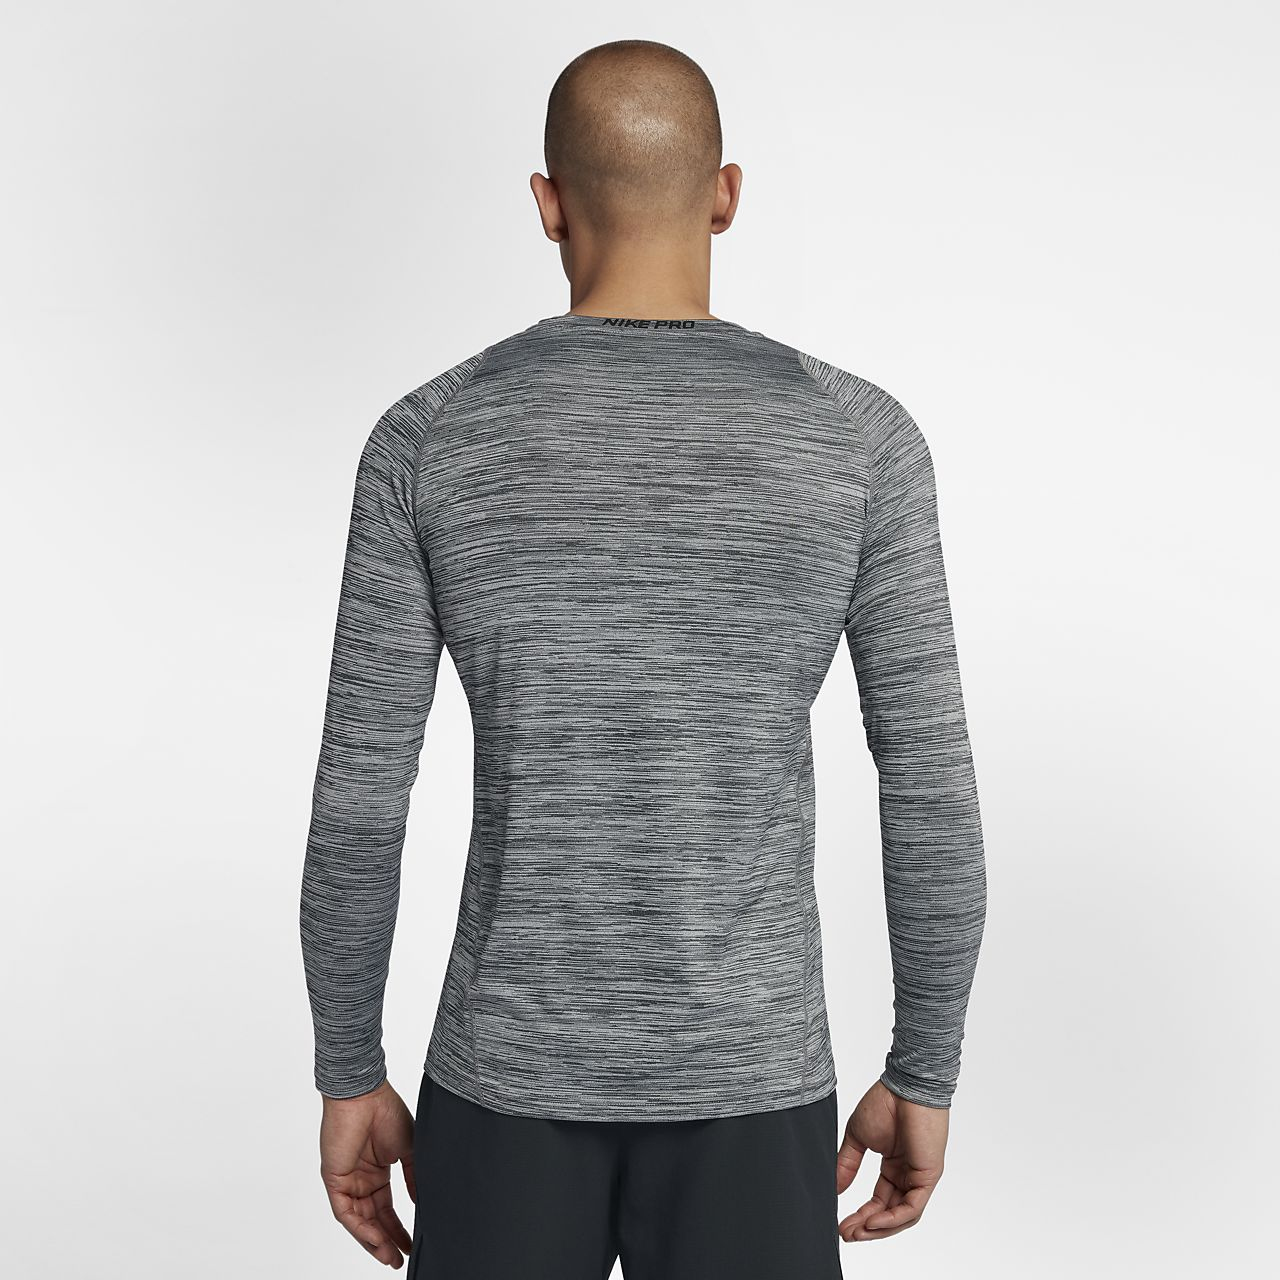 71257bc5ba Nike Pro Fitted Men's Long Sleeve Training Top. Nike.com